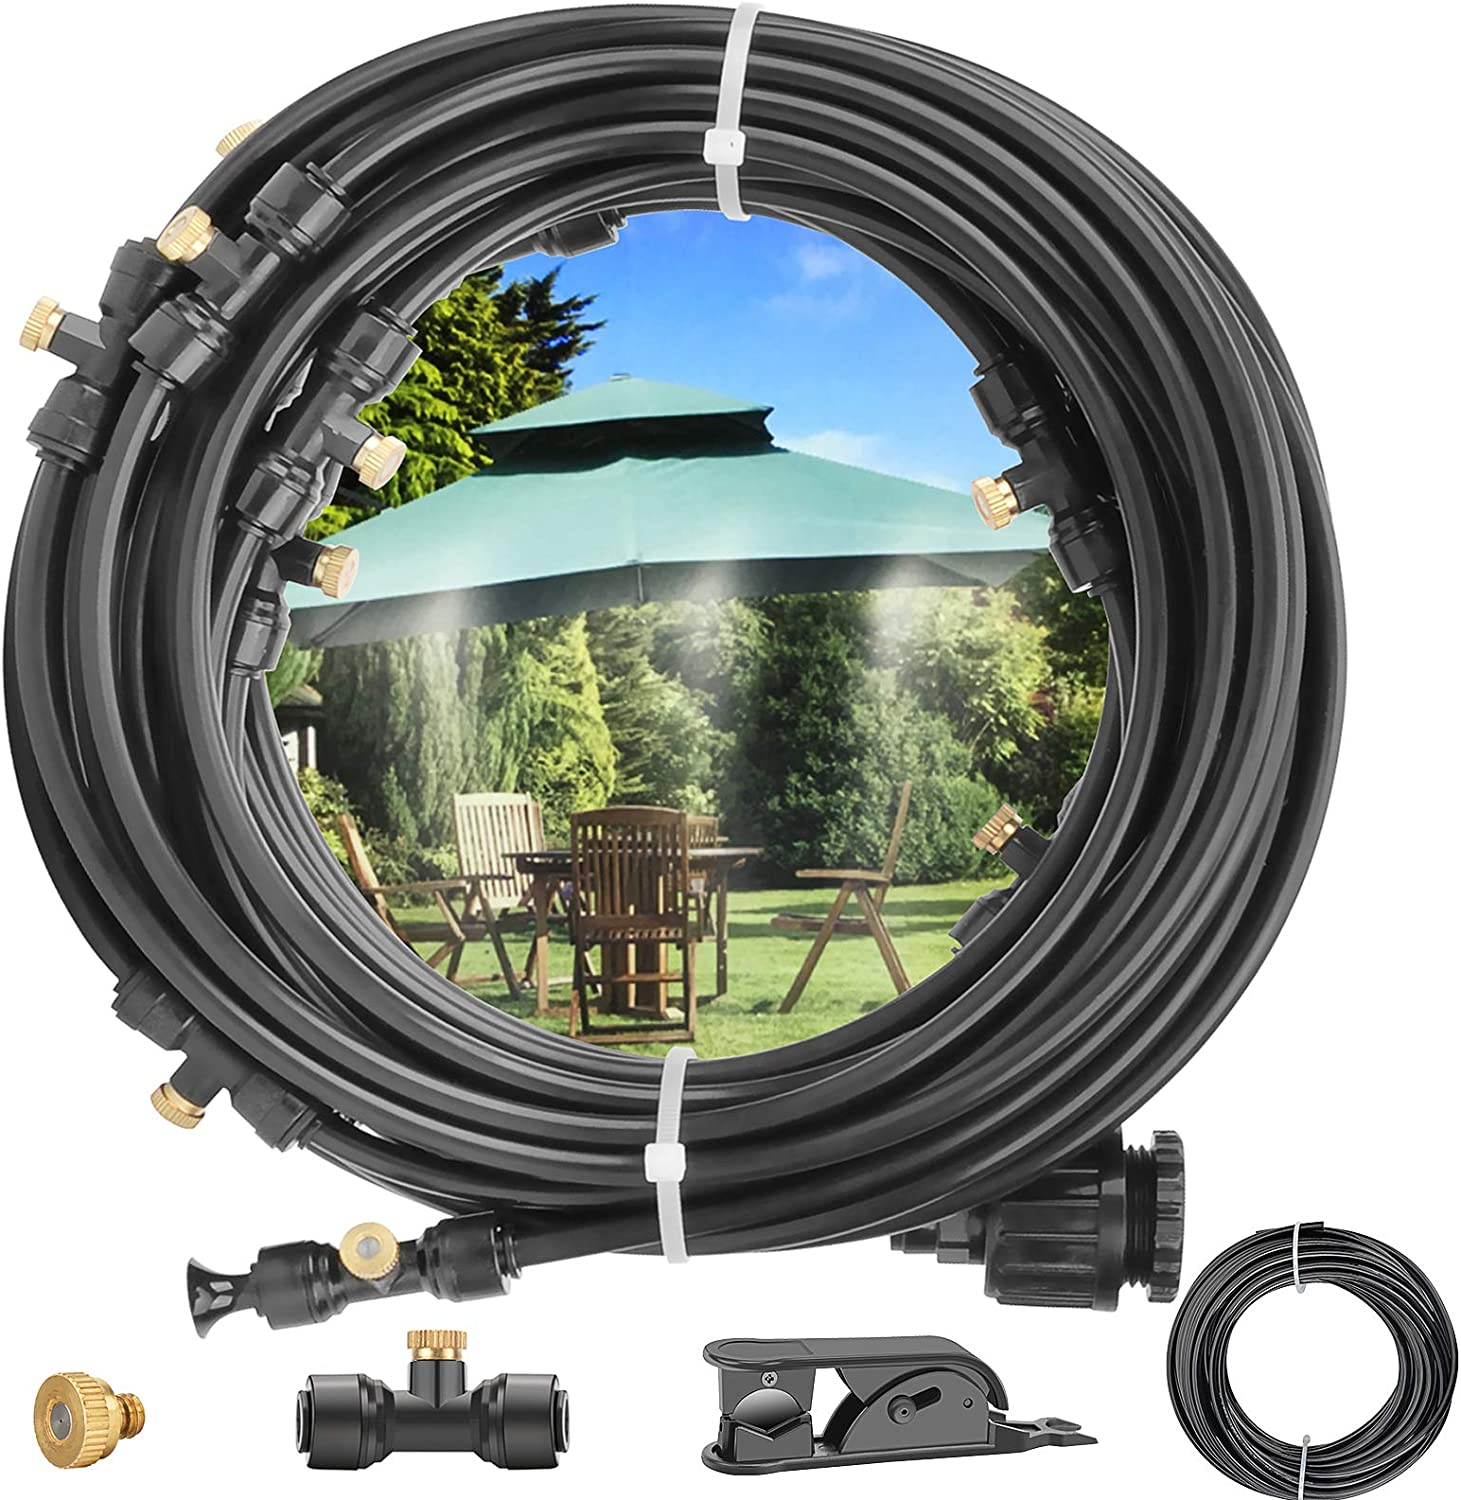 Amagoing Misting Cooling System 62.33ft(19M) Outdoor Misters for Patio Garden Greenhouse Trampoline Waterpark with 15pcs Brass Nozzles+3/4